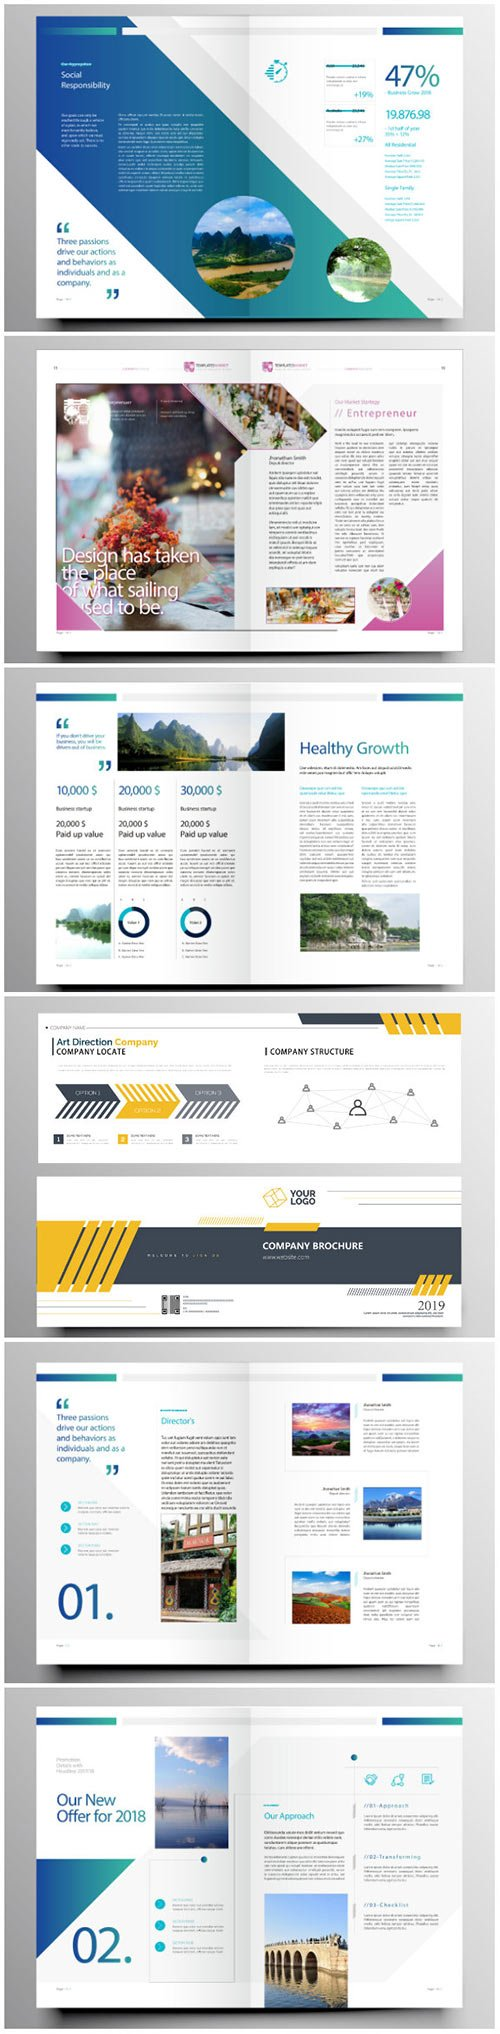 Brochure template vector layout design, corporate business annual report, magazine, flyer mockup # 207